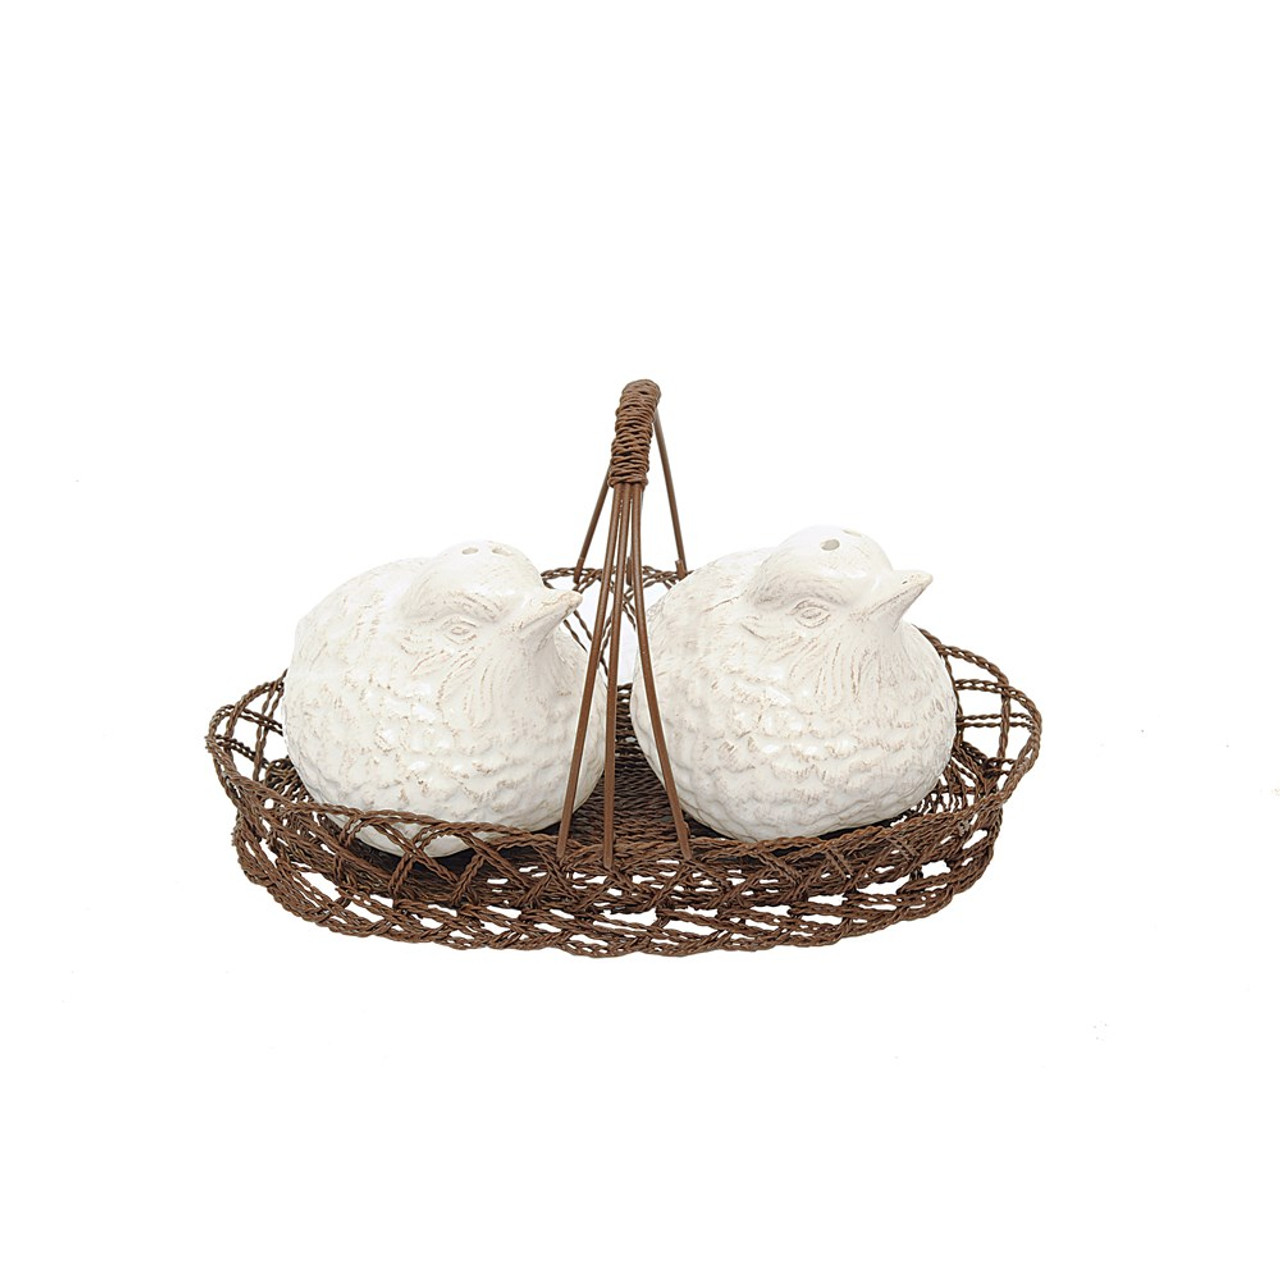 White Ceramic Bird Salt & Pepper Shakers in Wire Basket.